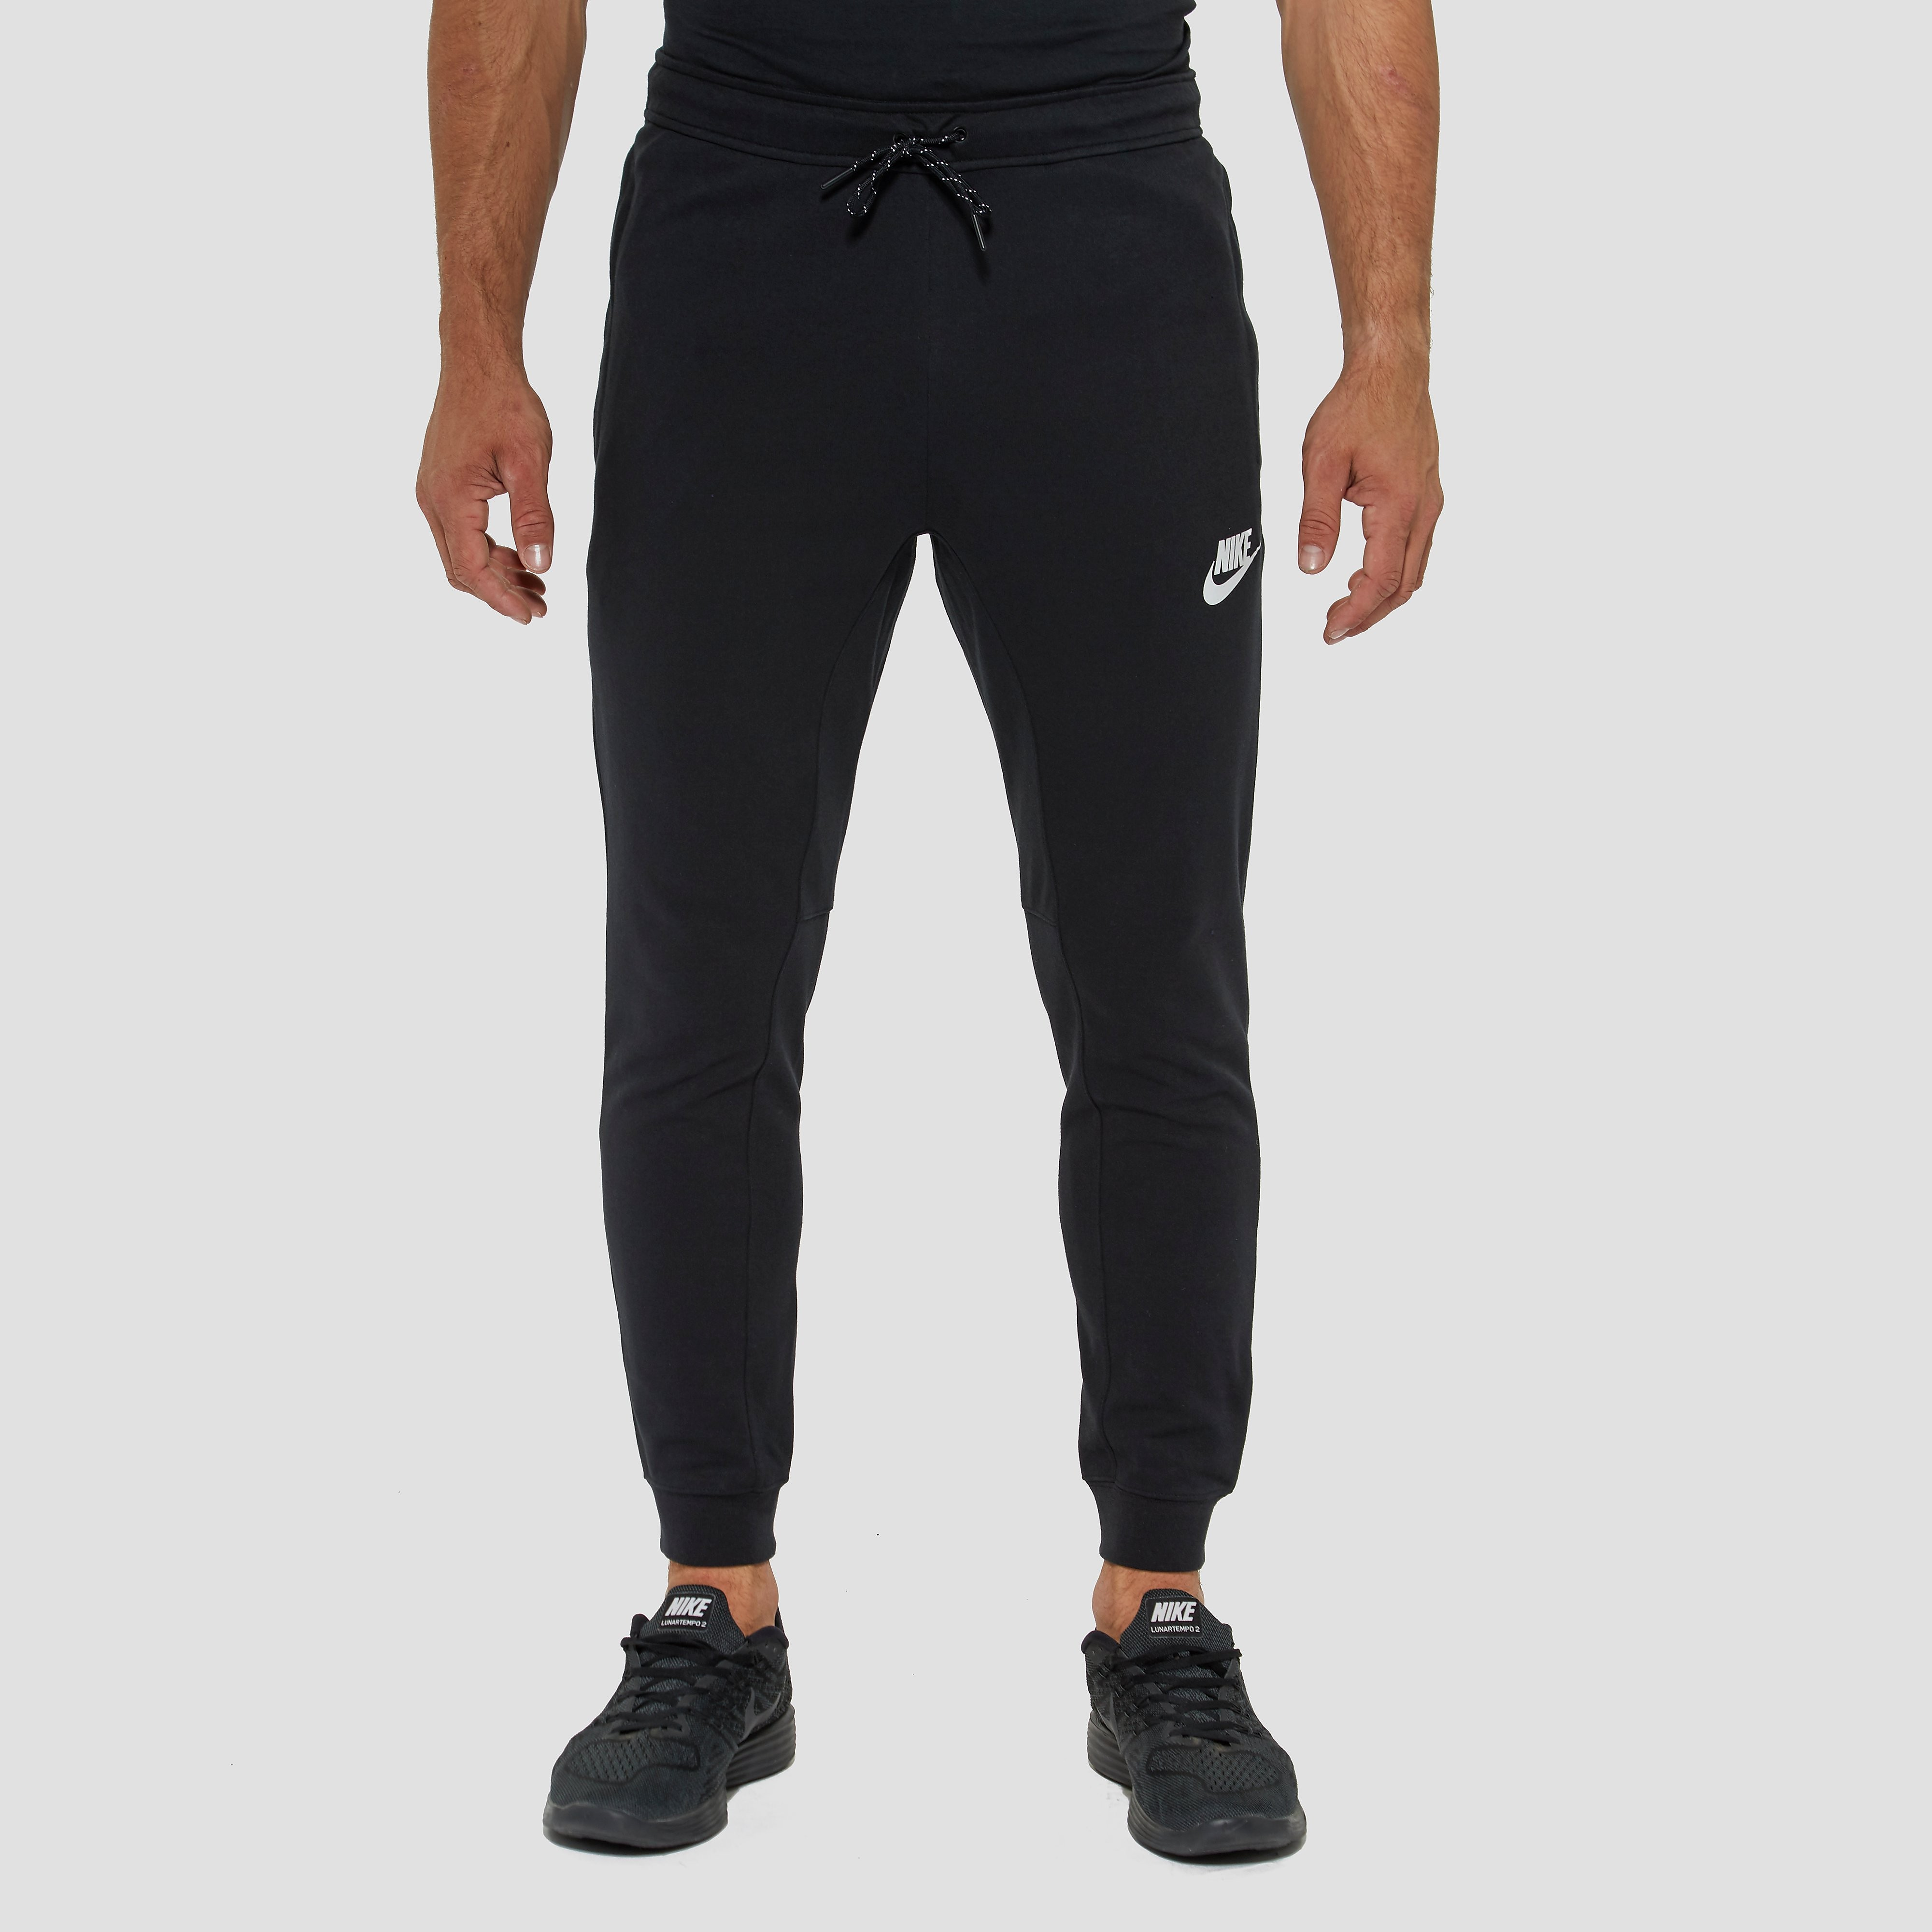 NIKE SPORTSWEAR AV15 FLEECE JOGGINGBROEK ZWART HEREN